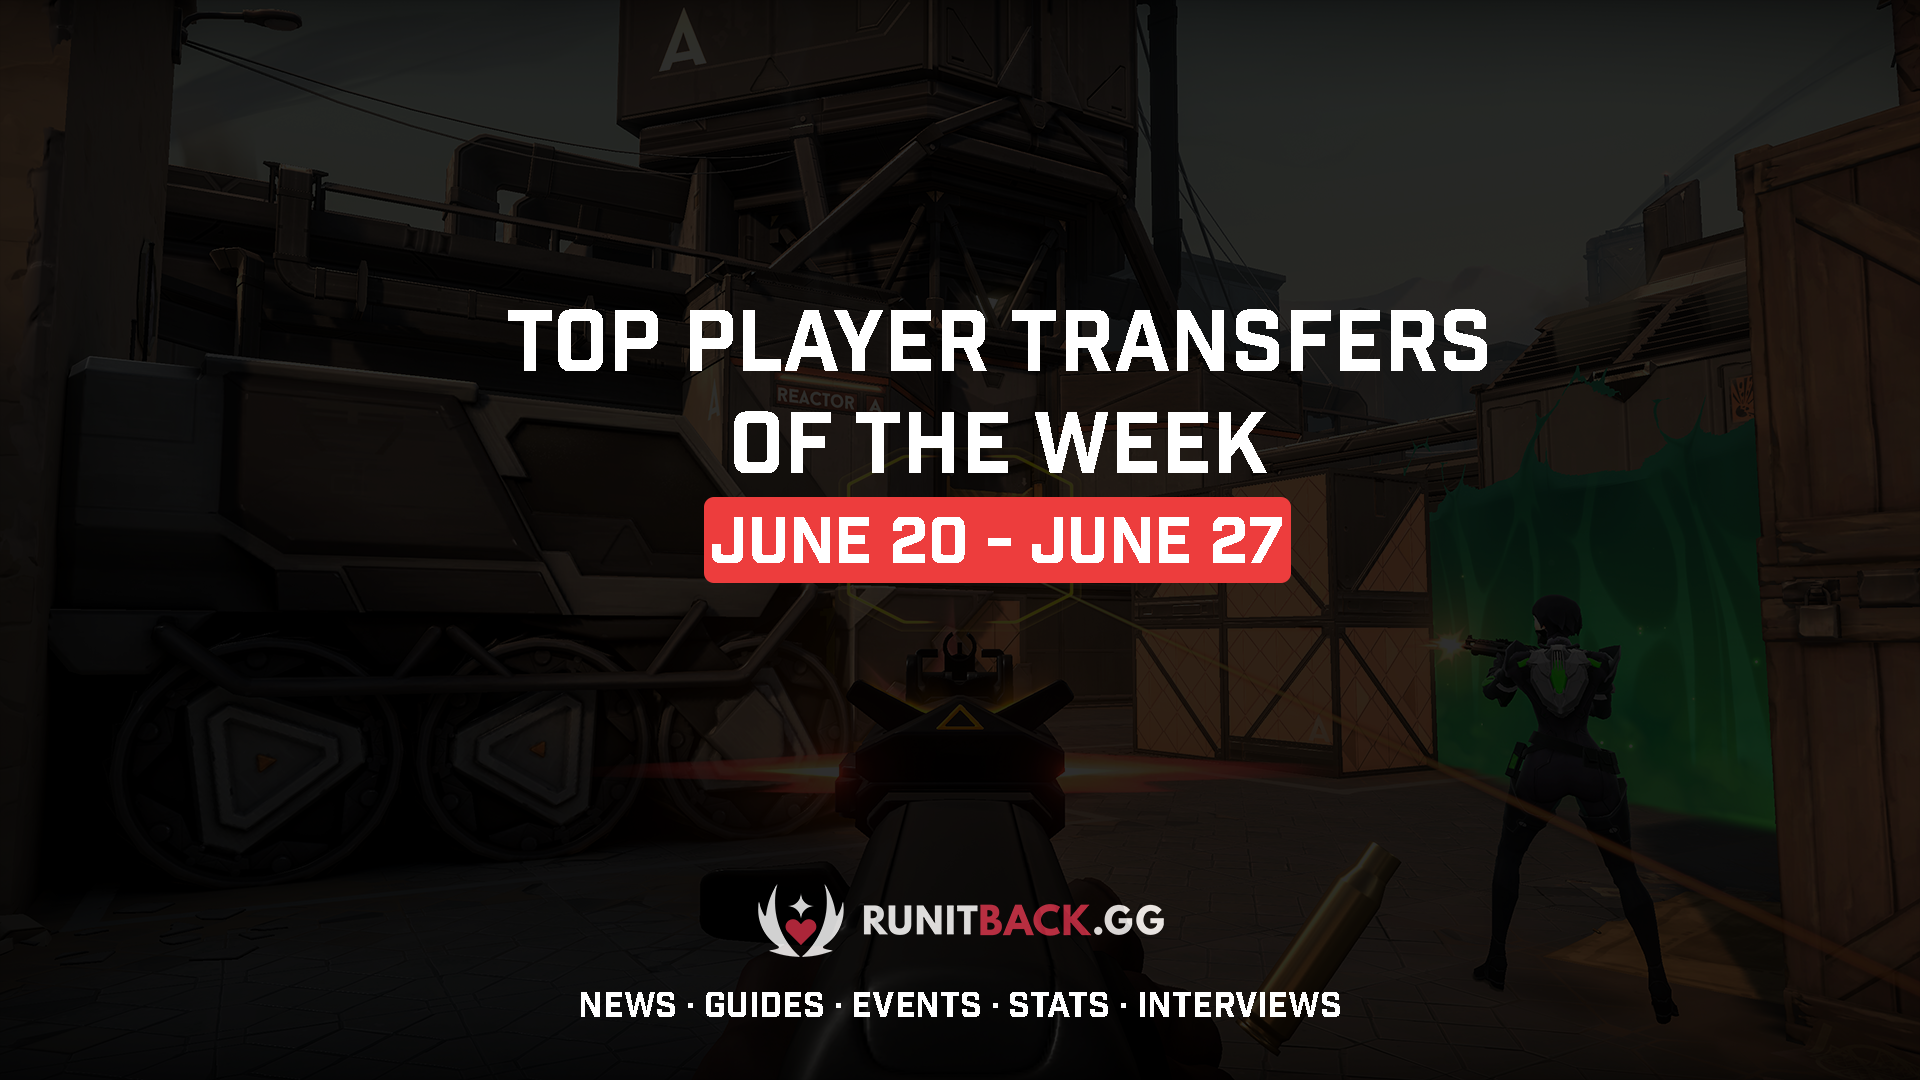 Top Player Transfers of the Week 6/20-6/27